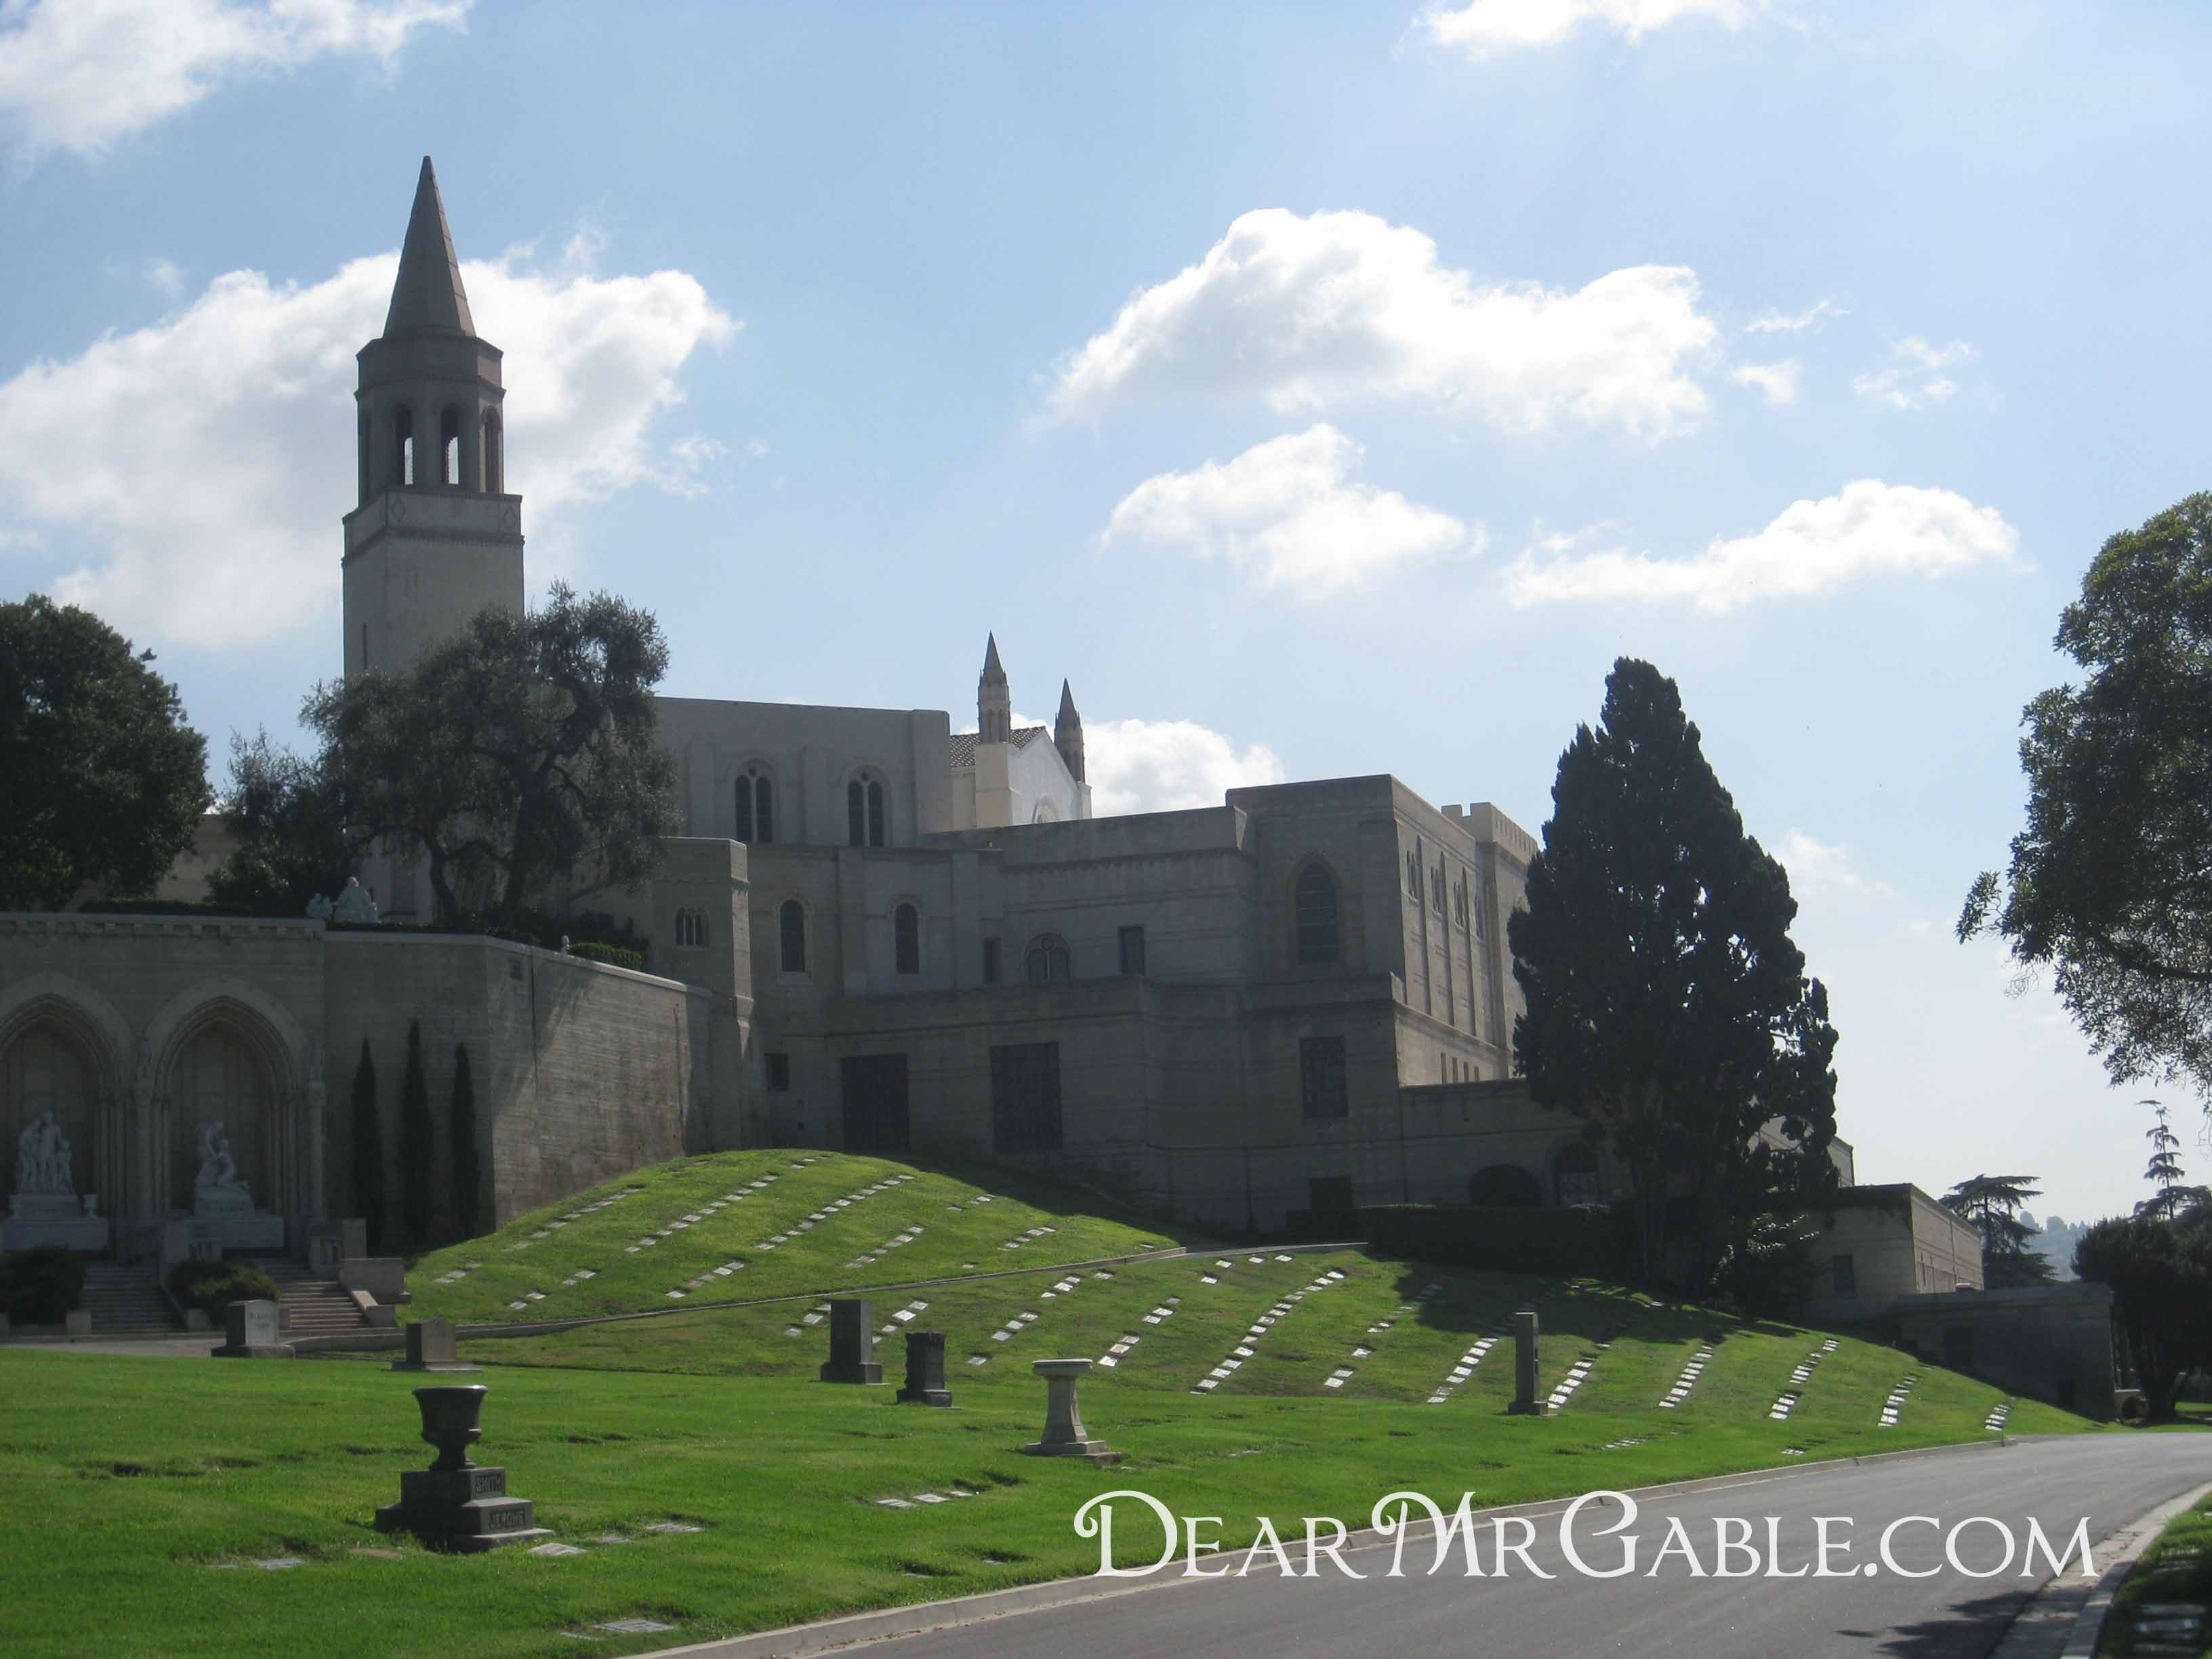 Hollywood Forest Lawn Glendale The Great Mausoleum And